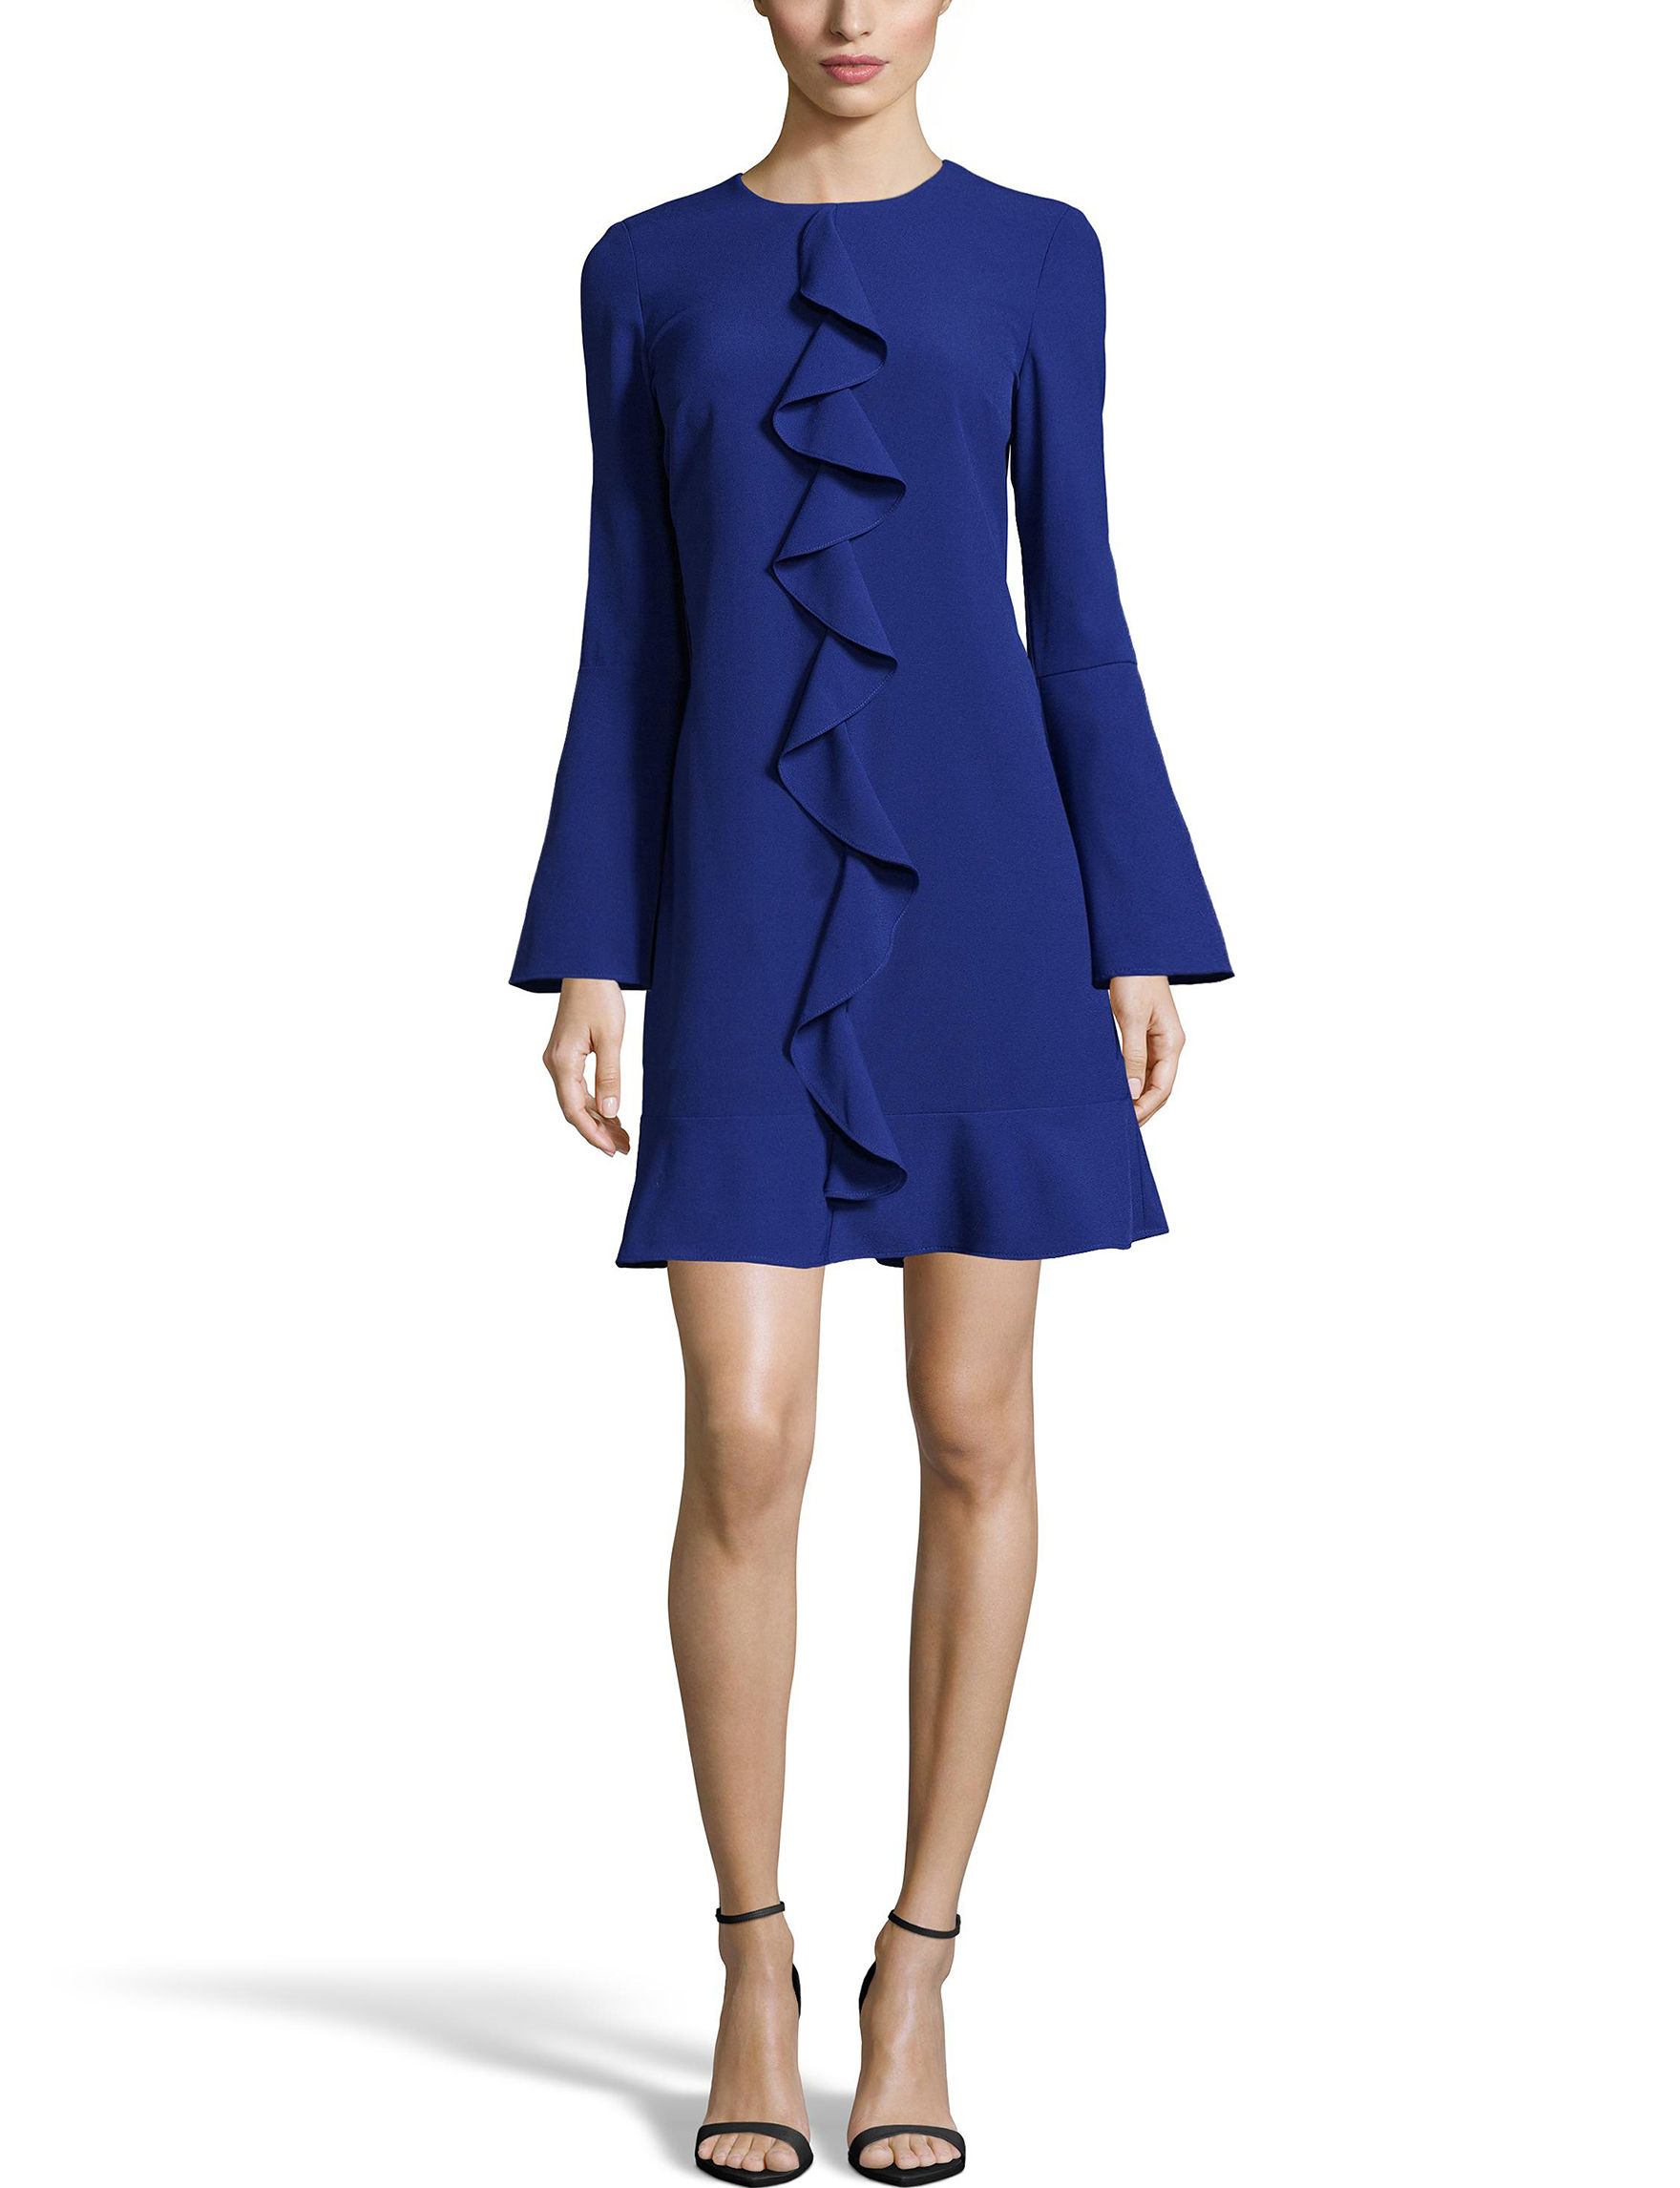 Nicole Miller Blue Everyday & Casual Sheath Dresses